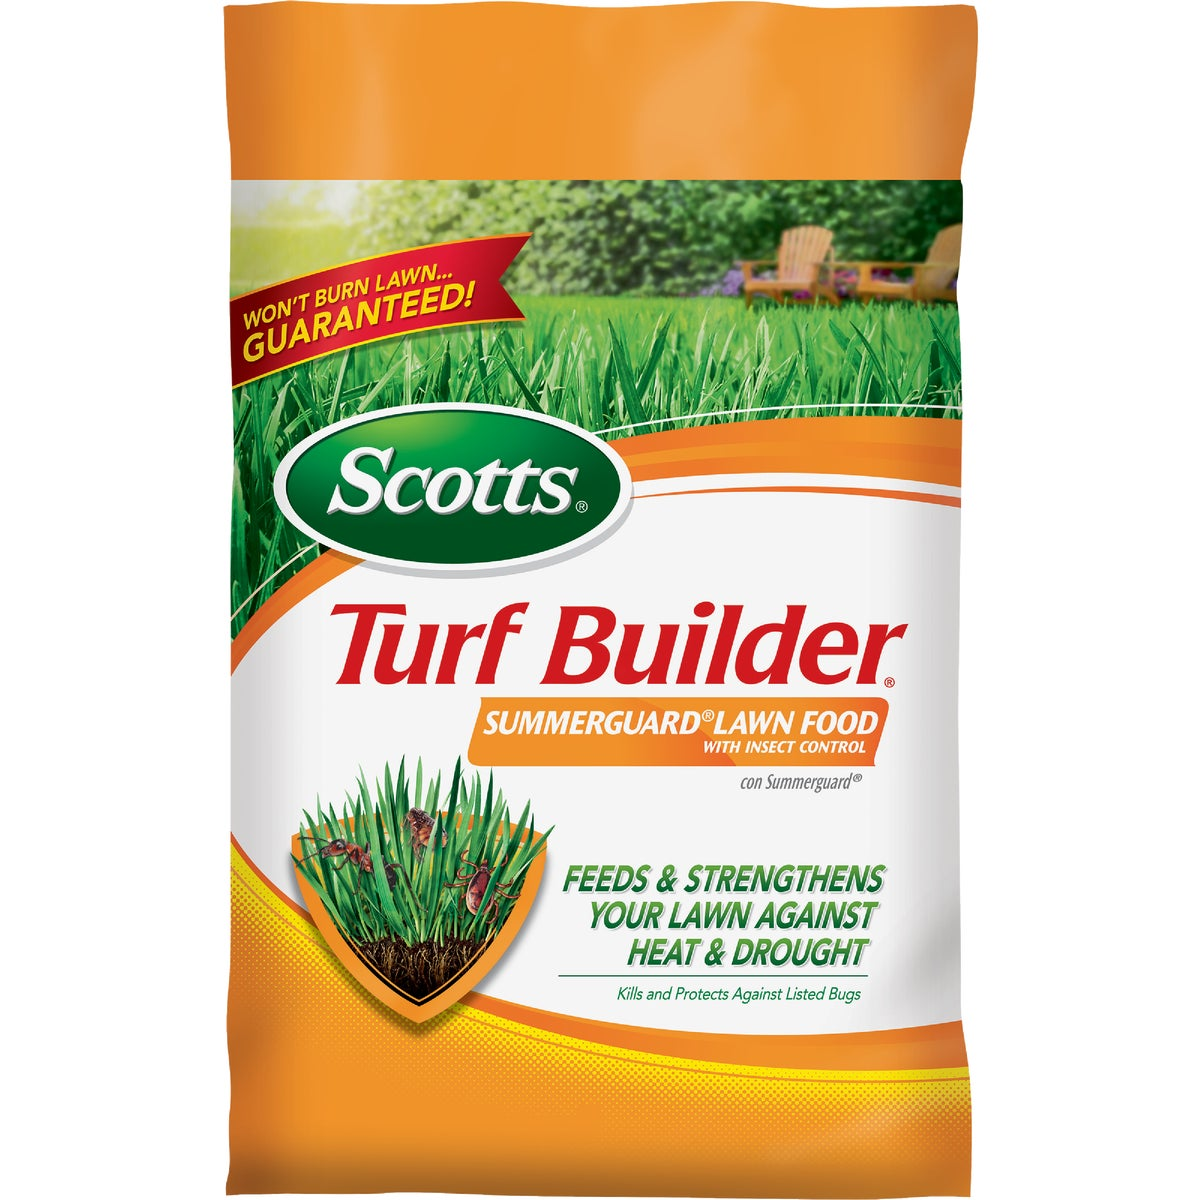 5M W/SUMRGD TURF BUILDER - 49013 by Scotts Company